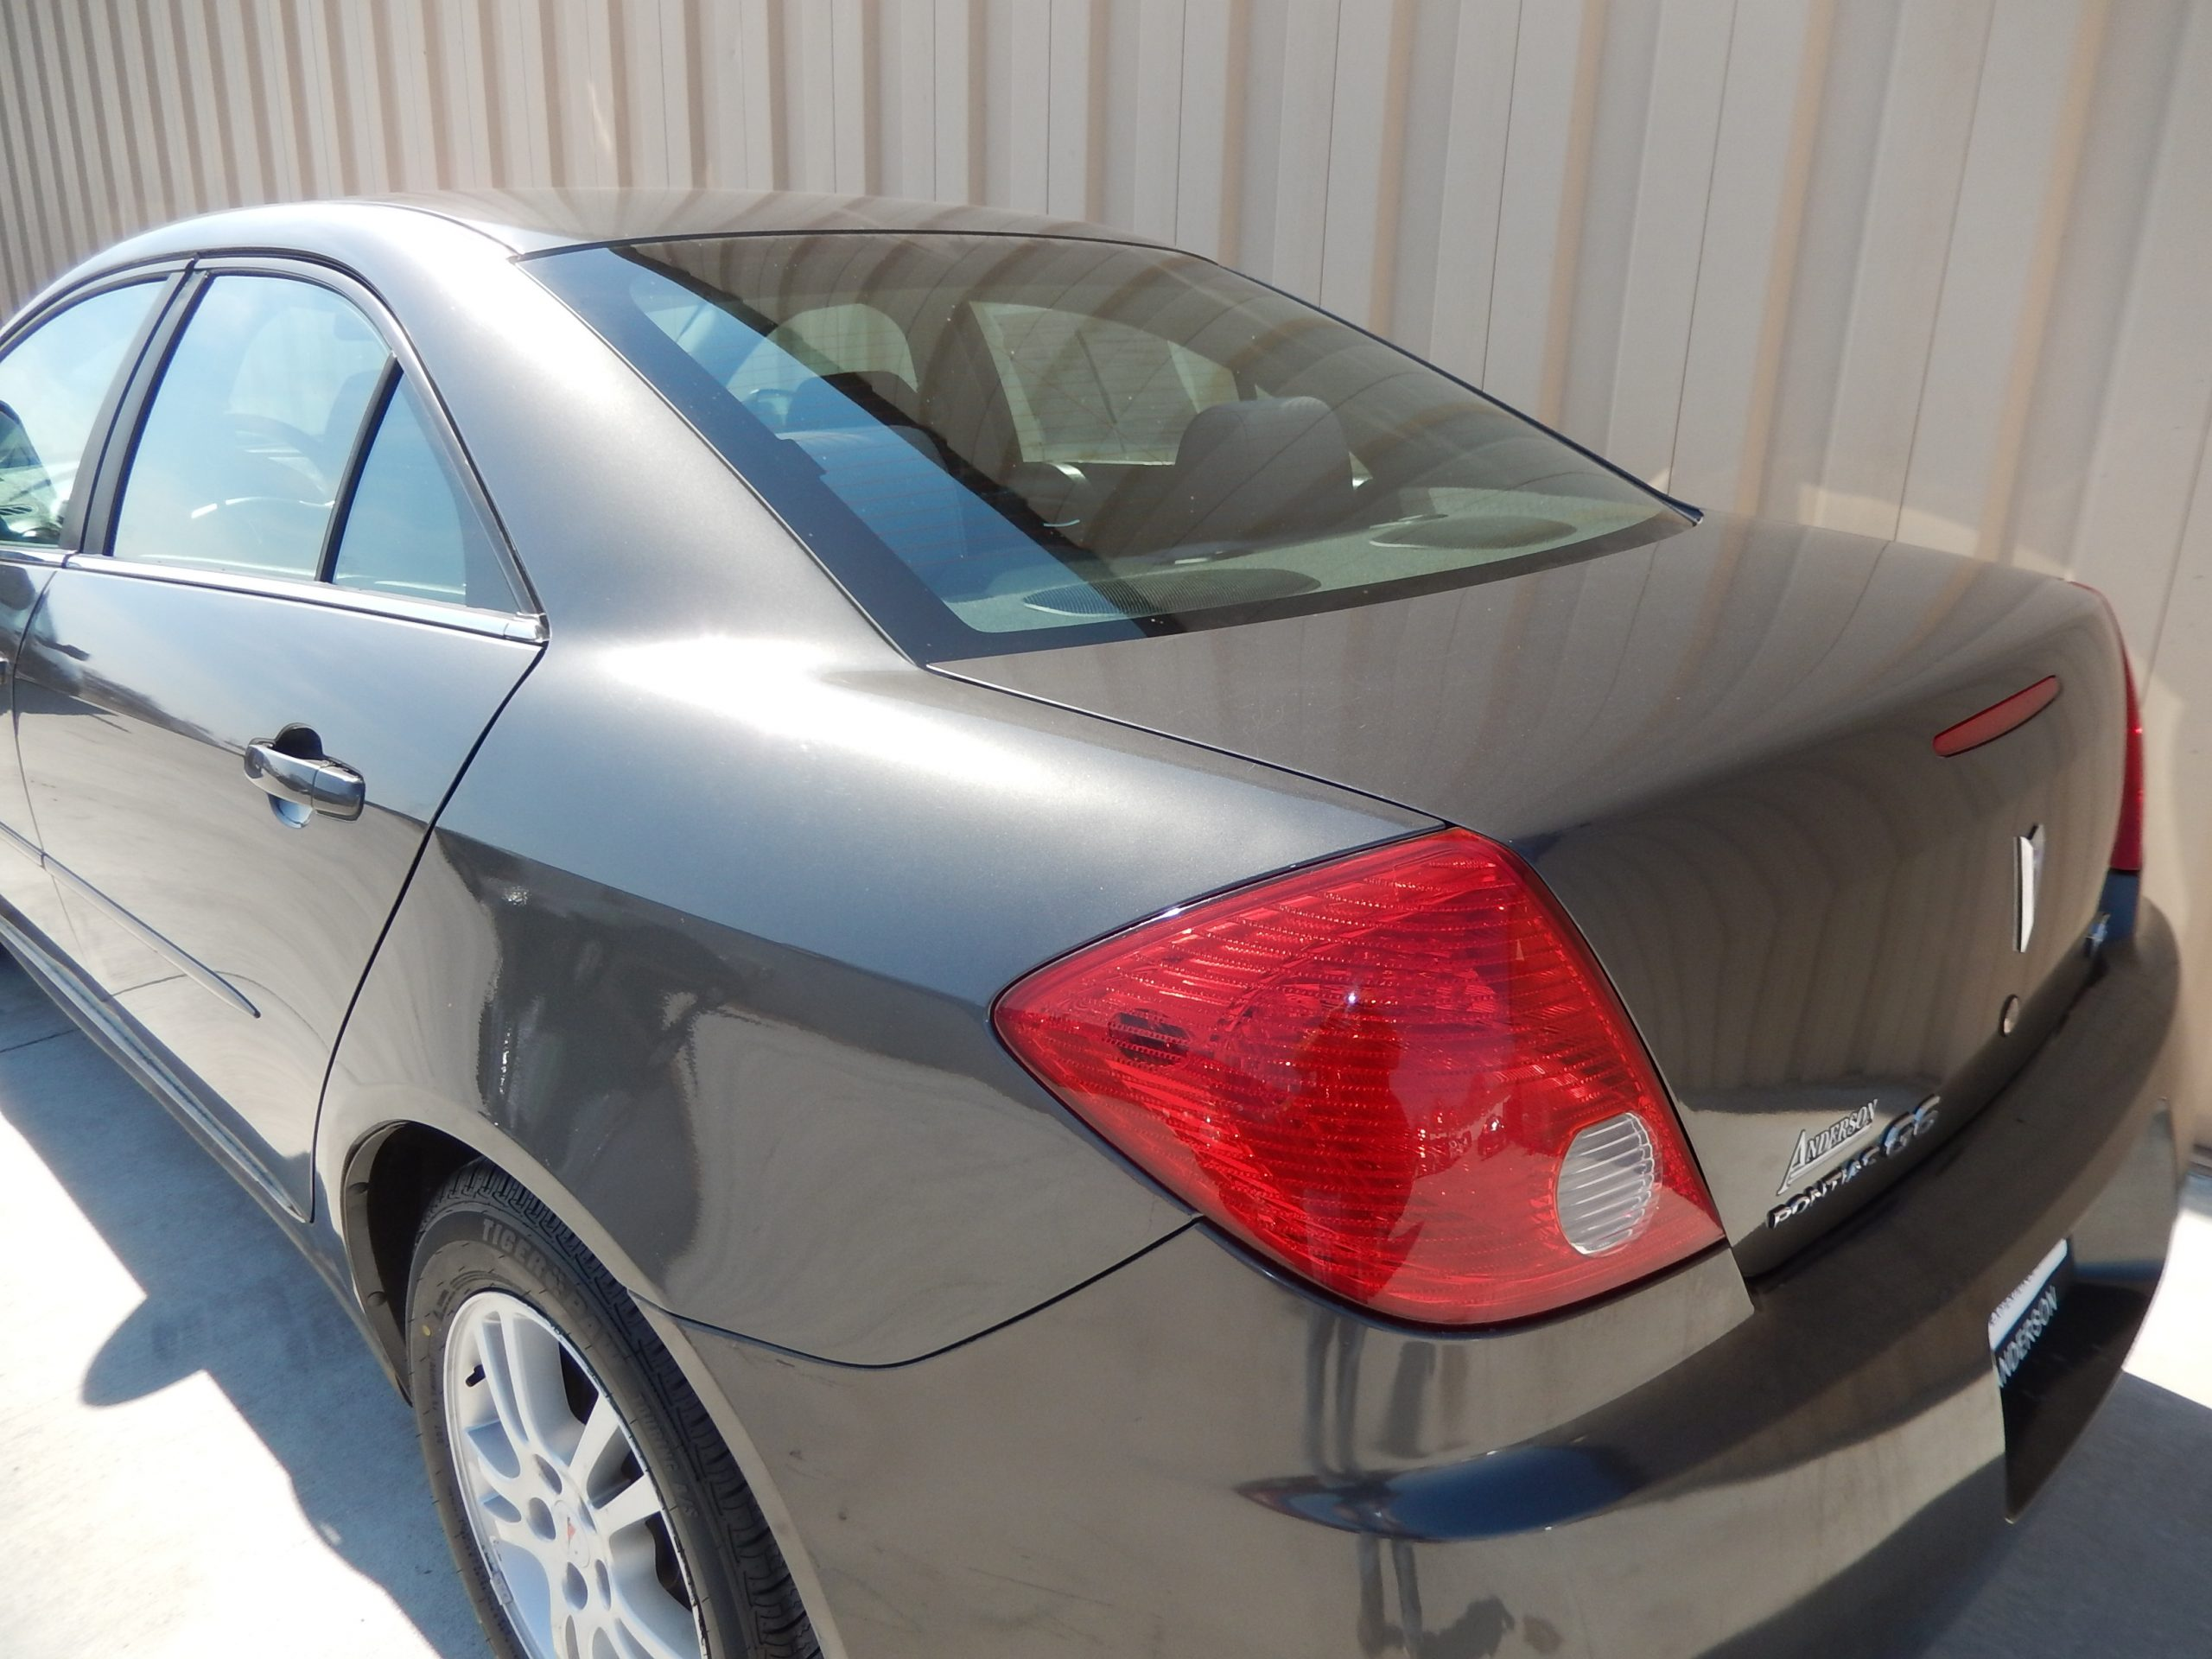 Used 2006 Pontiac G6  Sedan for sale in